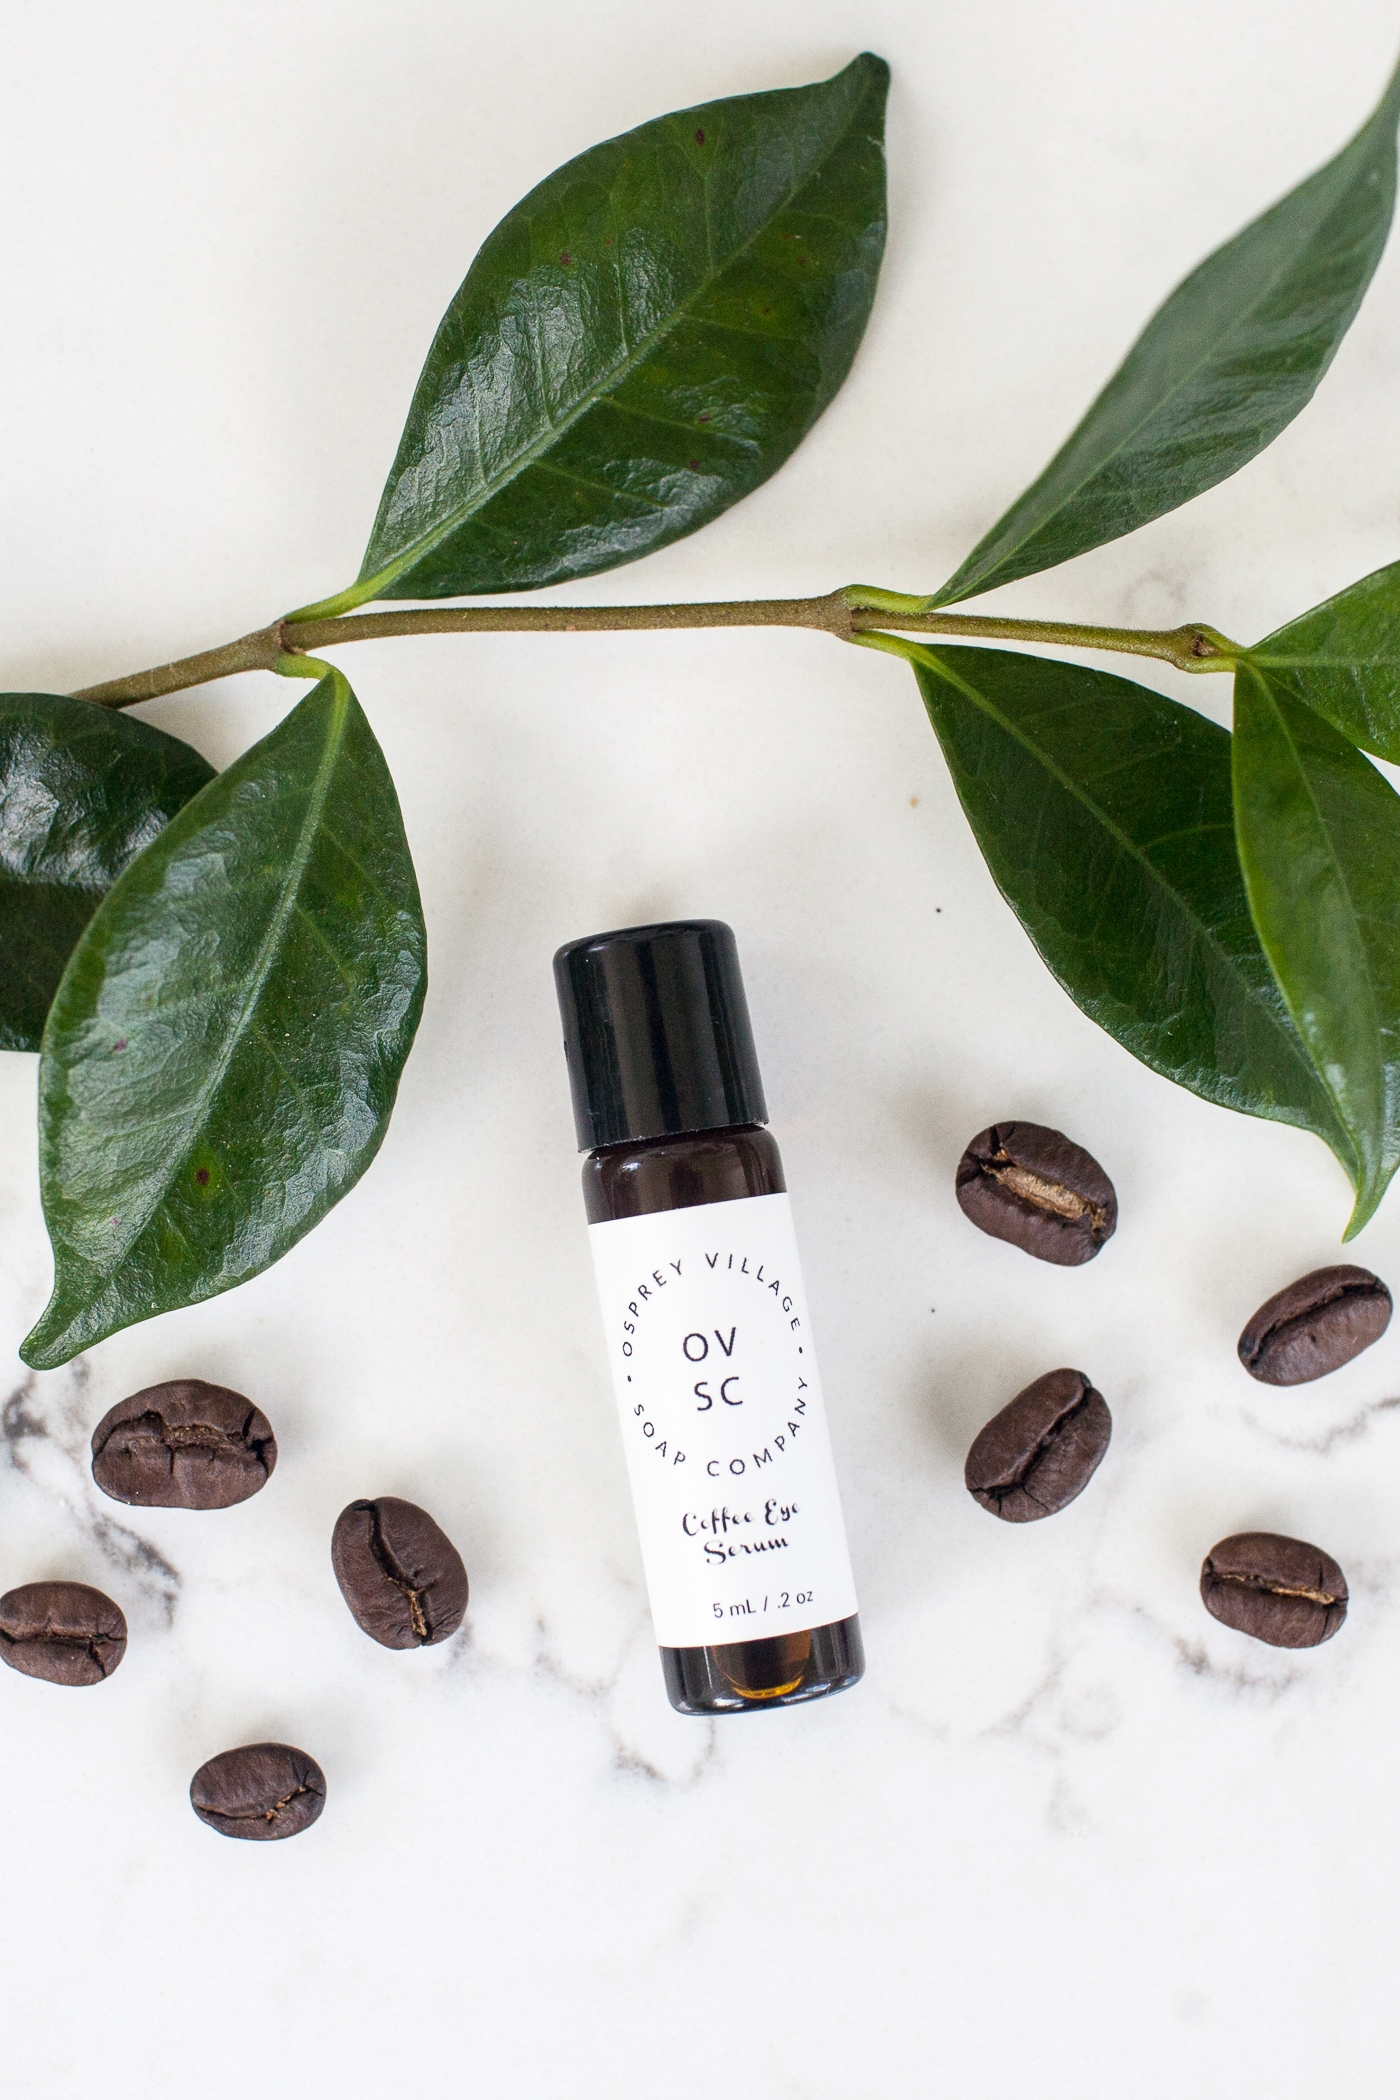 Coffee Eye Serum - by Osprey Village Soap CompanySay goodbye to dark circles and puffy eyes! This Coffee Eye Serum is an infused oil that lightens under-eye circles while removing puffiness.Coffee works wonders for our skin. The caffeine helps tighten fine lines (like the ones around our delicate eye area), and reduces puffiness by preventing blood flow to the area. The stimulating properties of coffee also brightens your skin.. Combined with super-oil rosehip, vitamin E oil and scented with luxurious neroli essential oil which helps regenerate skill cells and improves the skin's elasticity.Gently roll under your eyes before bed and in the morning after washing your face. Our glass vial includes a metal roller ball for a cooling application that further reduces puffiness. Osprey Village Soap Company never uses fillers or unnecessary additives so a little goes a long ways!Click HERE to shop online!Click HERE to find stockists!